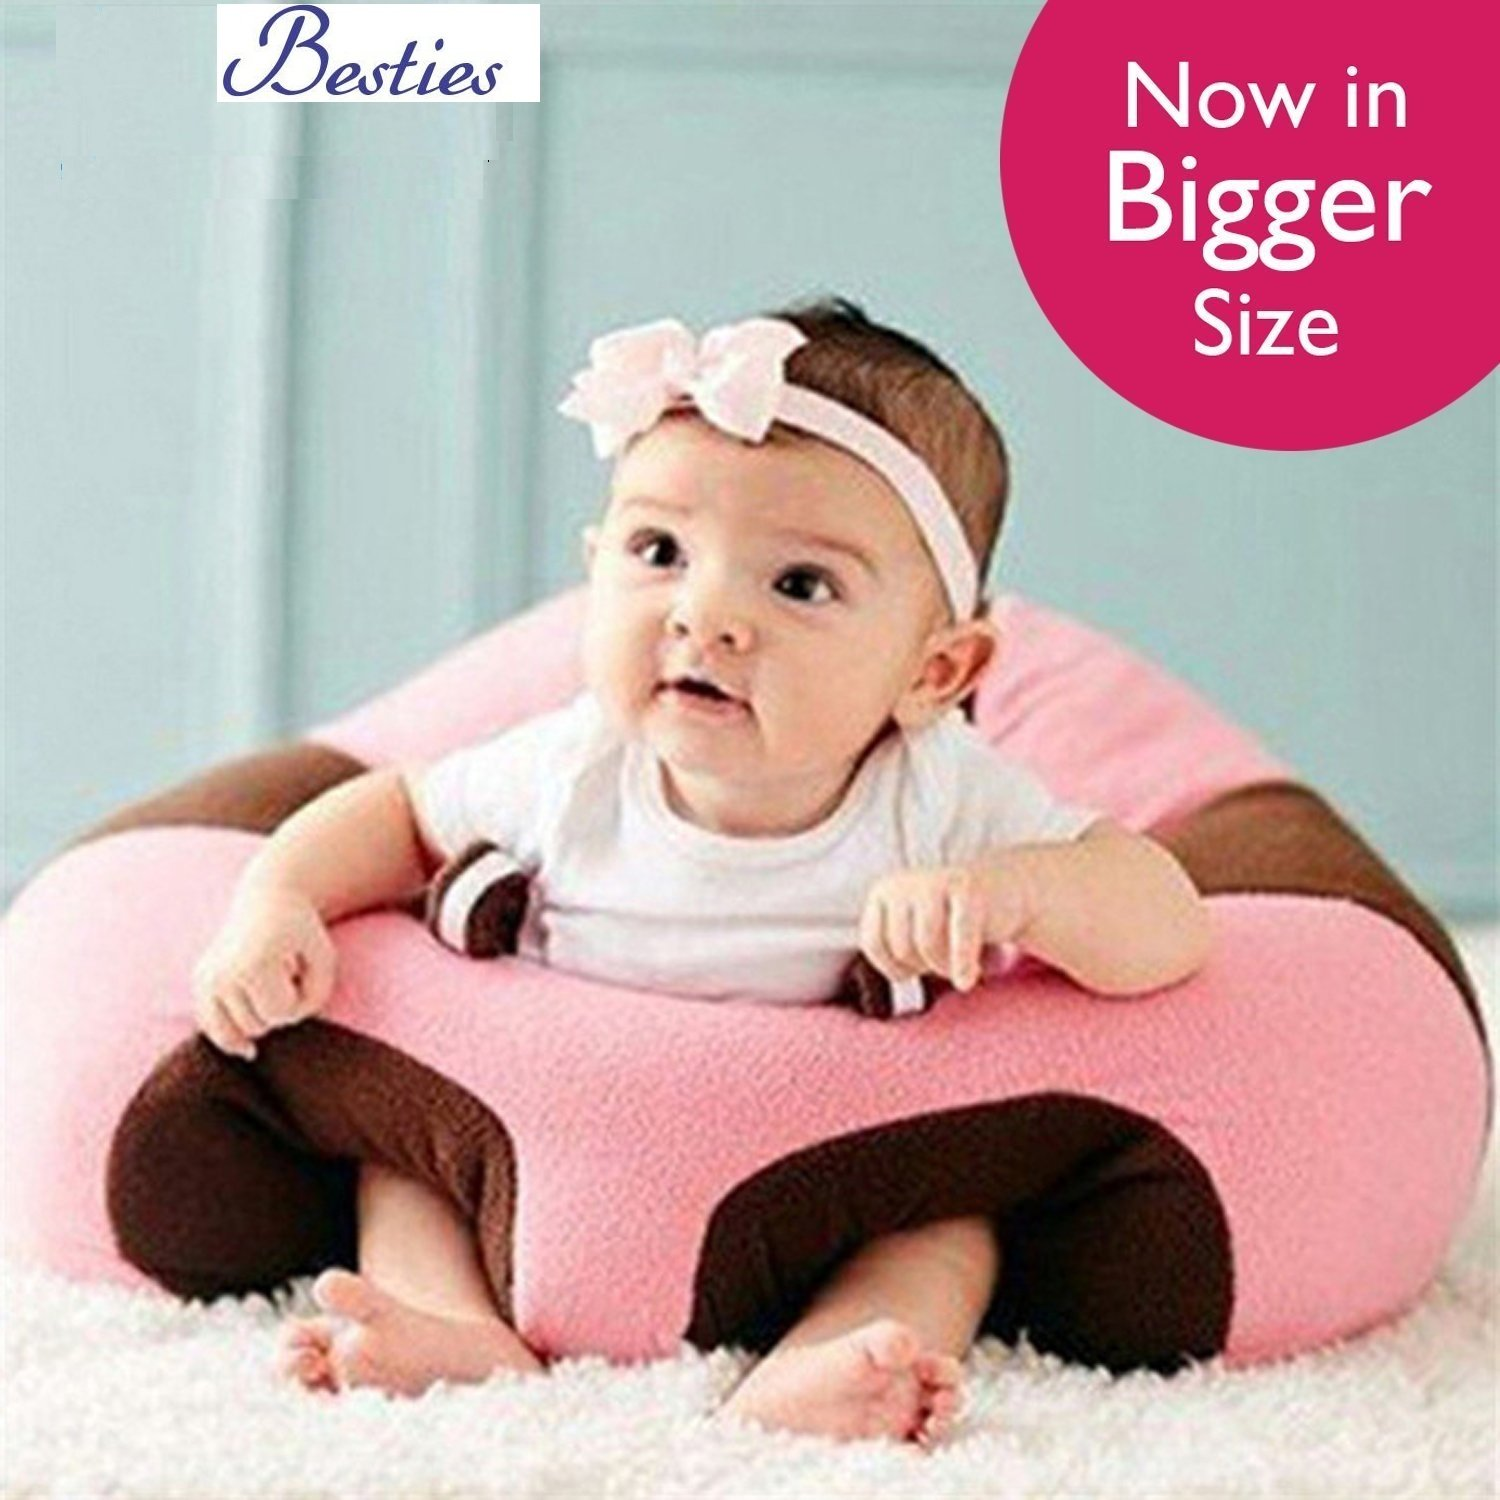 Baby Cute Sofa Support Seat Infant Learn Sit Seat Chair Pillow Cushion 14 Types